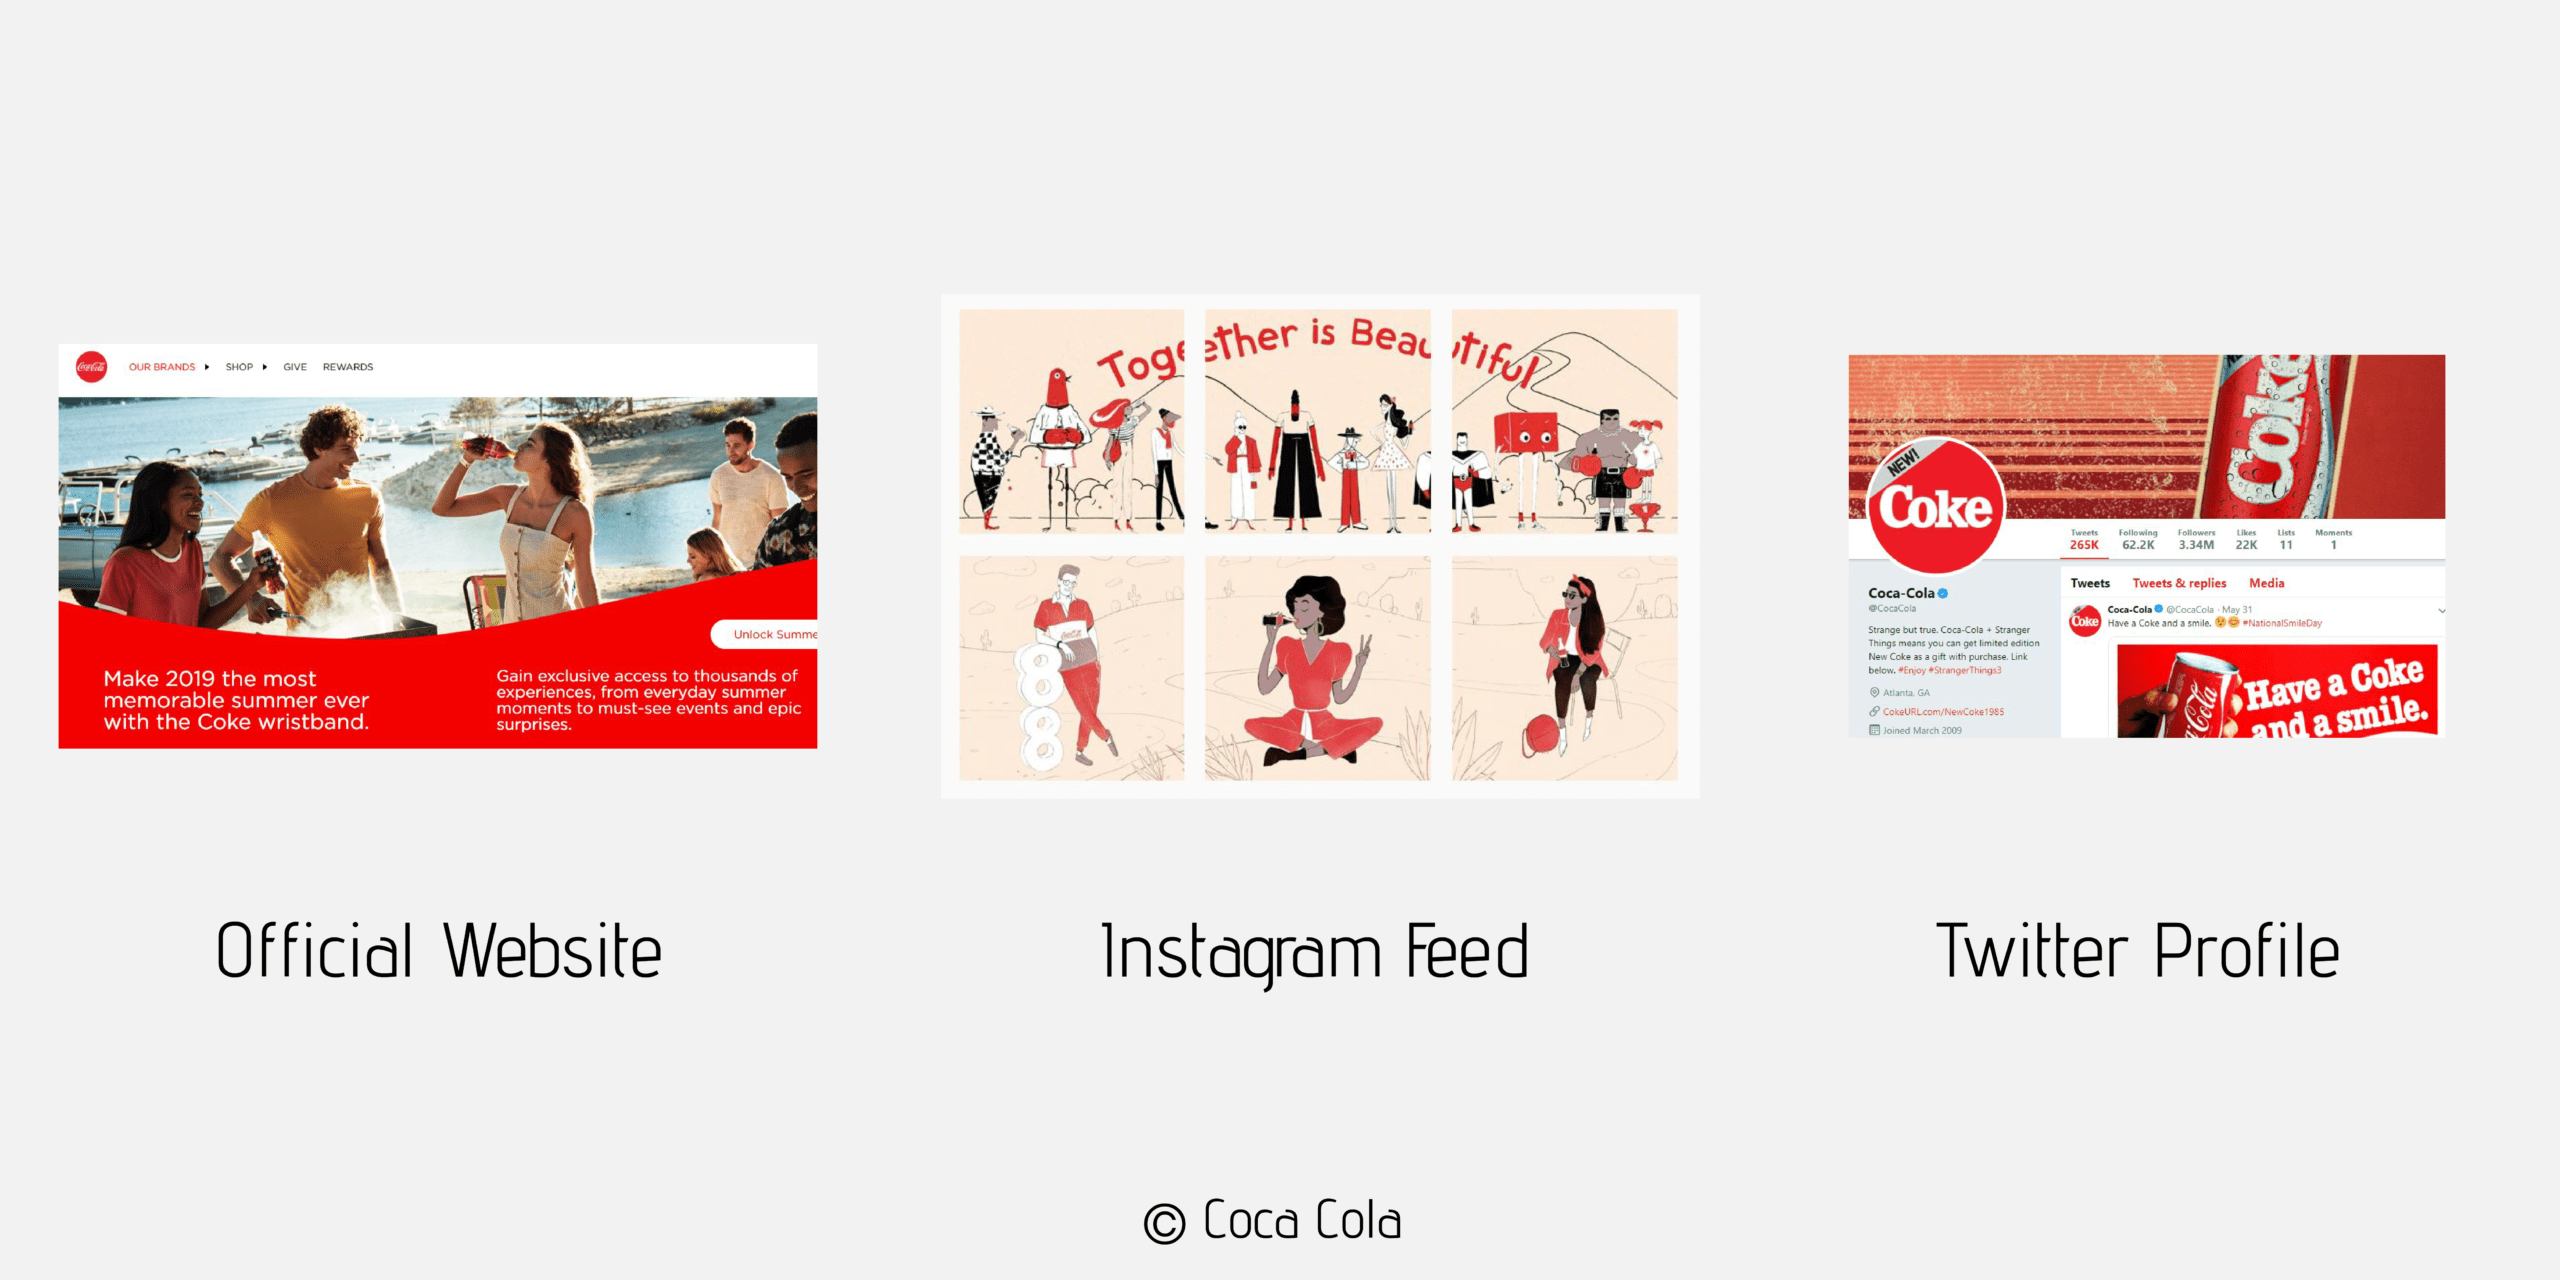 A photo showing how coca cola uses the red color to express their visual identity online.